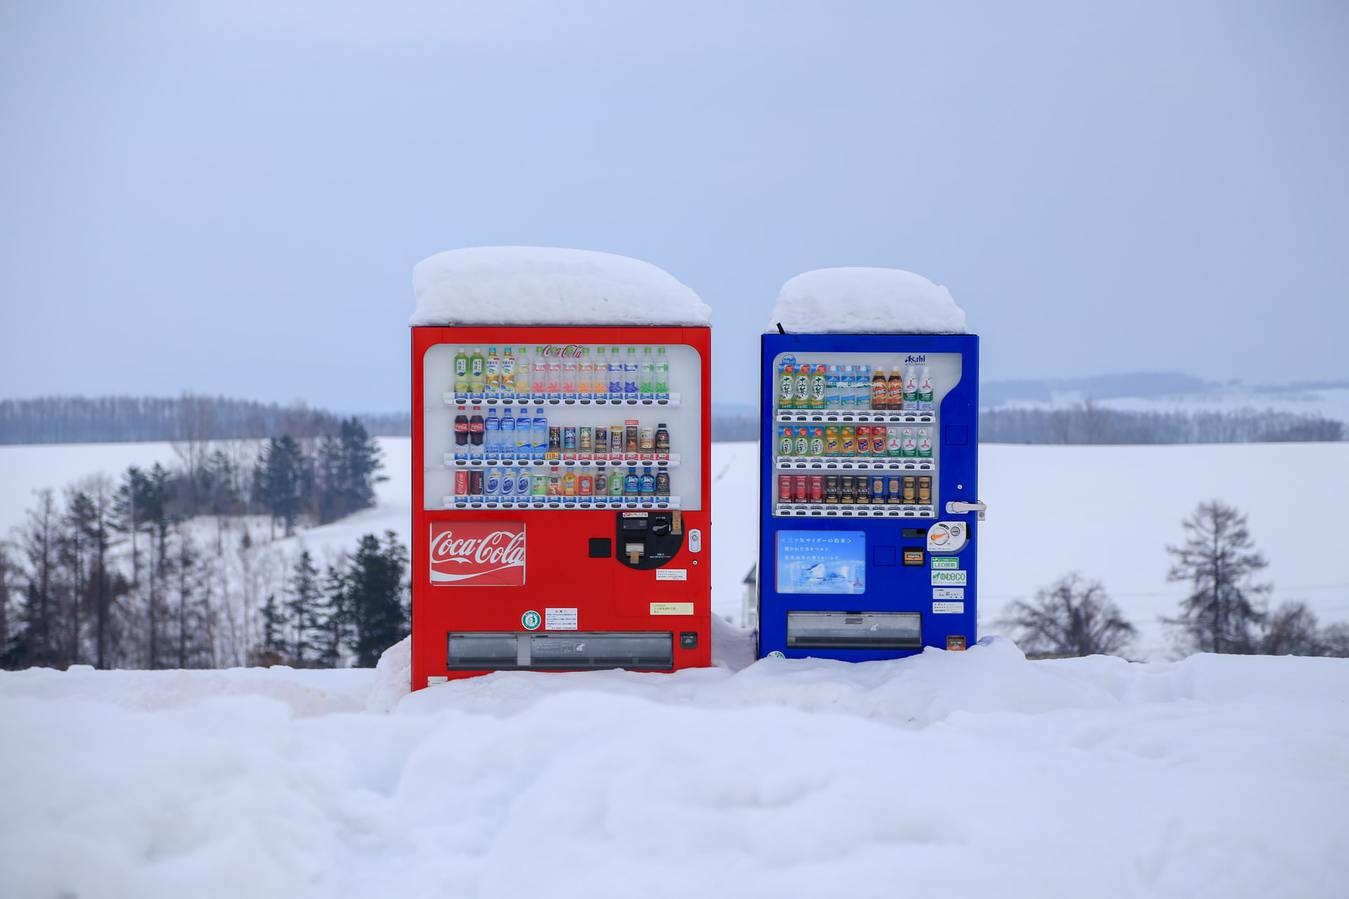 Vending machines with Drinks in Field with Snow